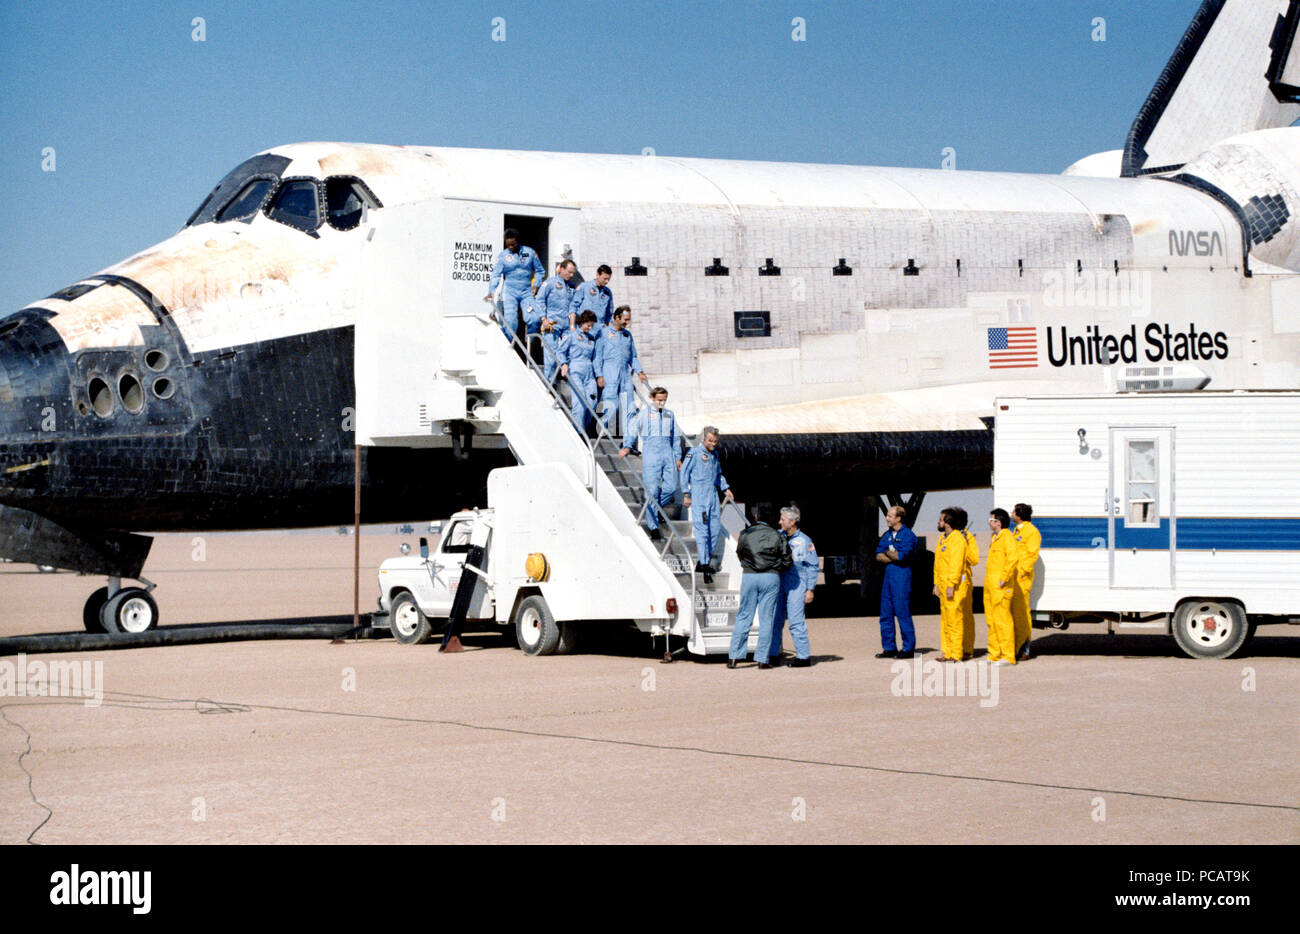 The crew of the STS 61-A mission egress the Orbiter after landing. Astronaut Henry W. Hartsfield Jr., 61-A mission commander, shakes hands with George W.S. Abbey, Director of Flight Crew Operations at JSC, as the rest of the crew descends the steps. From left to right are Guion S. Bluford, Jr., James F. Buchli, Steven R. Nagel, Bonnie J. Dunbar, Wubbo J. Ockels, Ernst Messerschmid, and Reinhard Furrer. November 6, 1985 - Stock Image